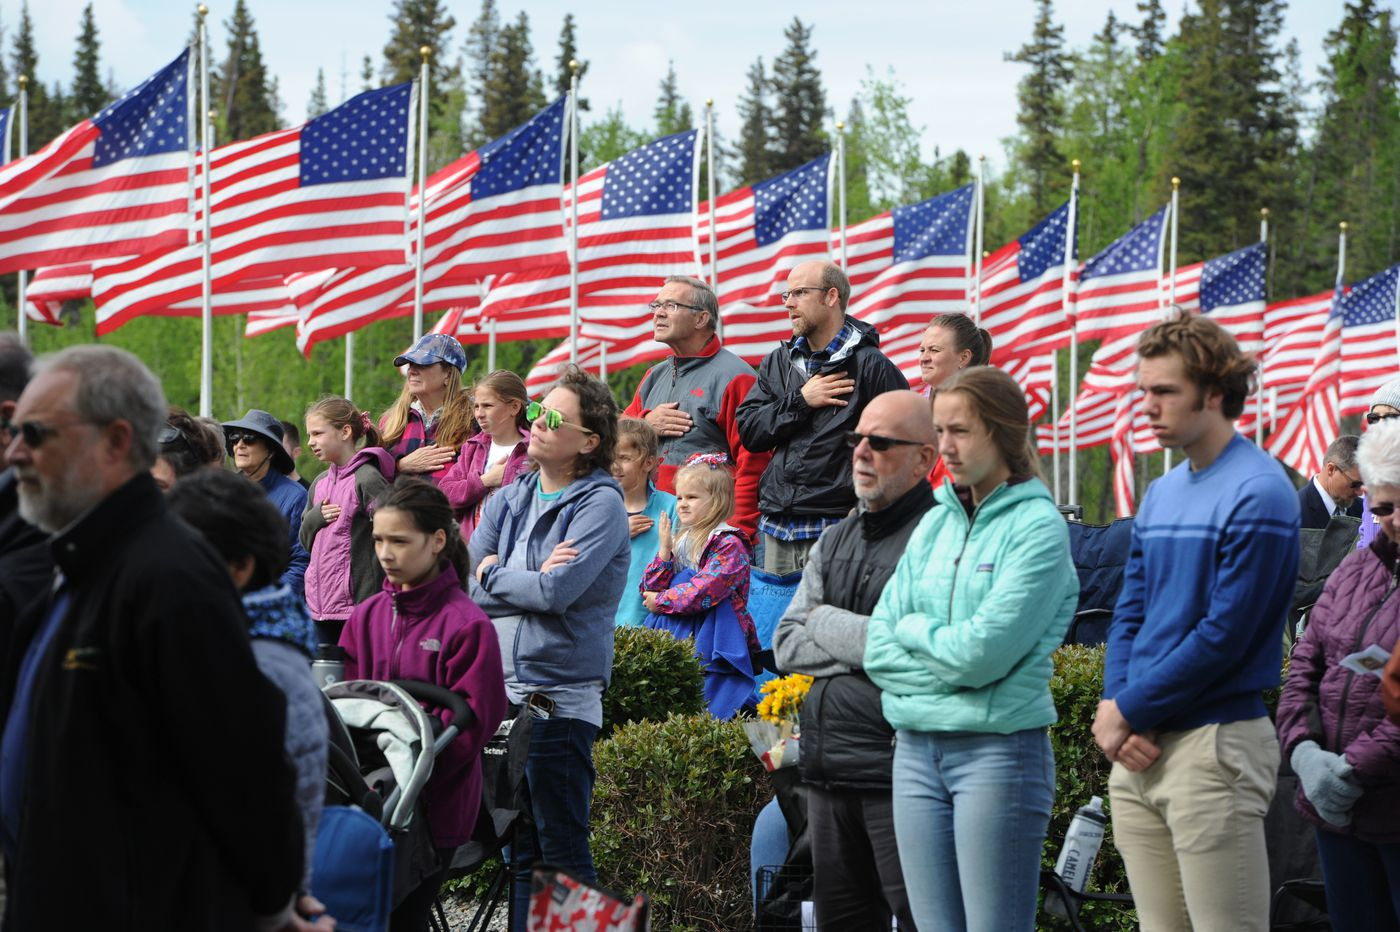 Dozens of people attended the Memorial Day ceremony at the Fort Richardson National Cemetery on Monday. (Bill Roth / ADN)